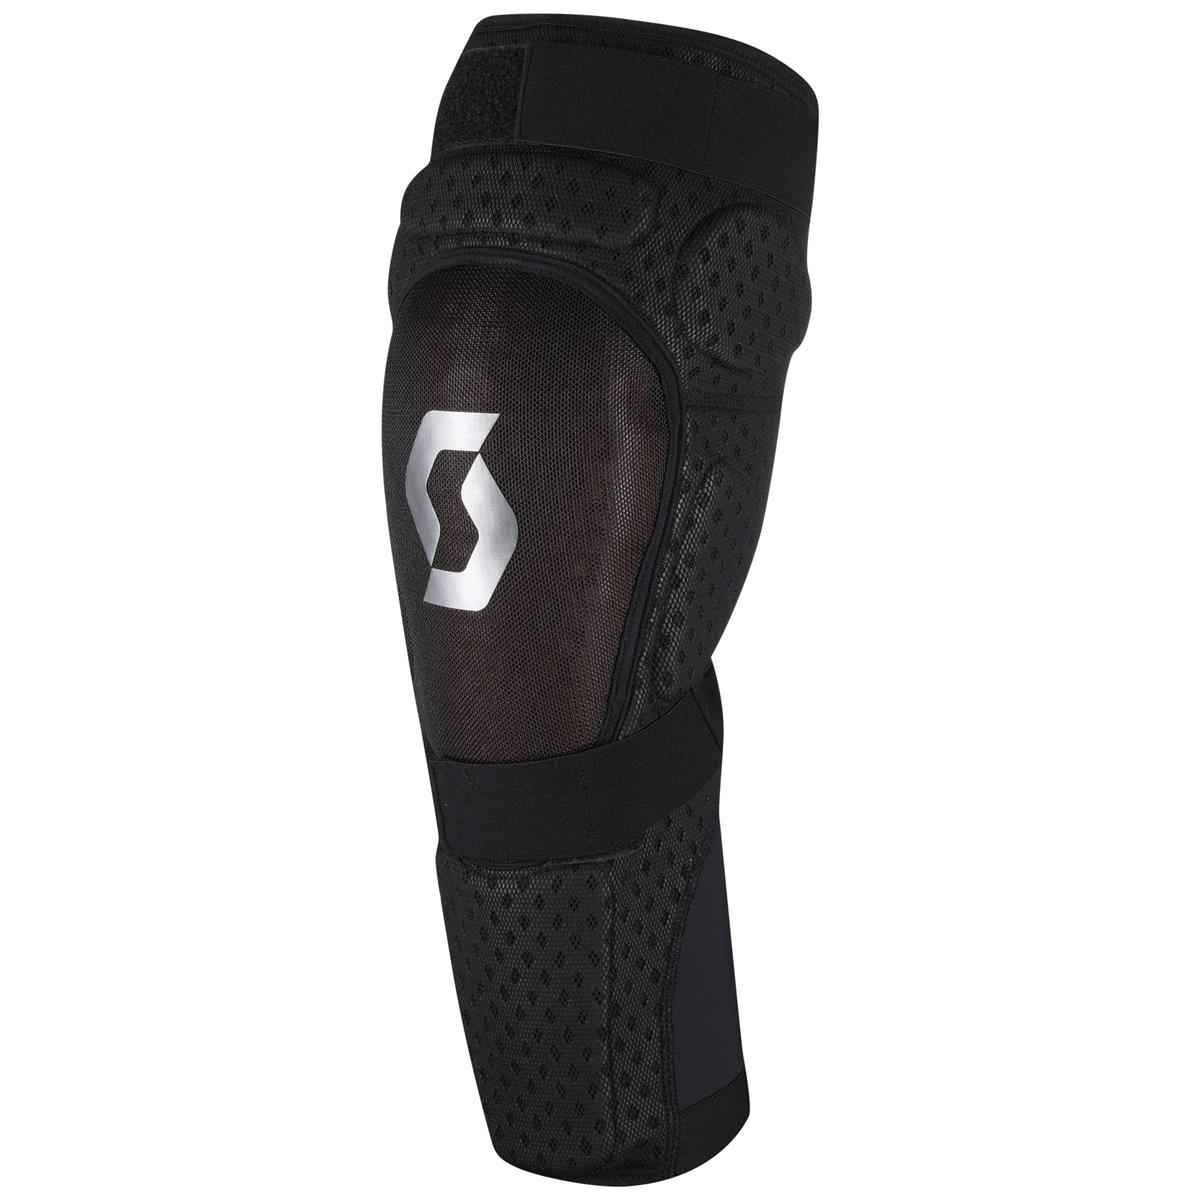 Knee pads Softcon 2 Black/Grey - Size S